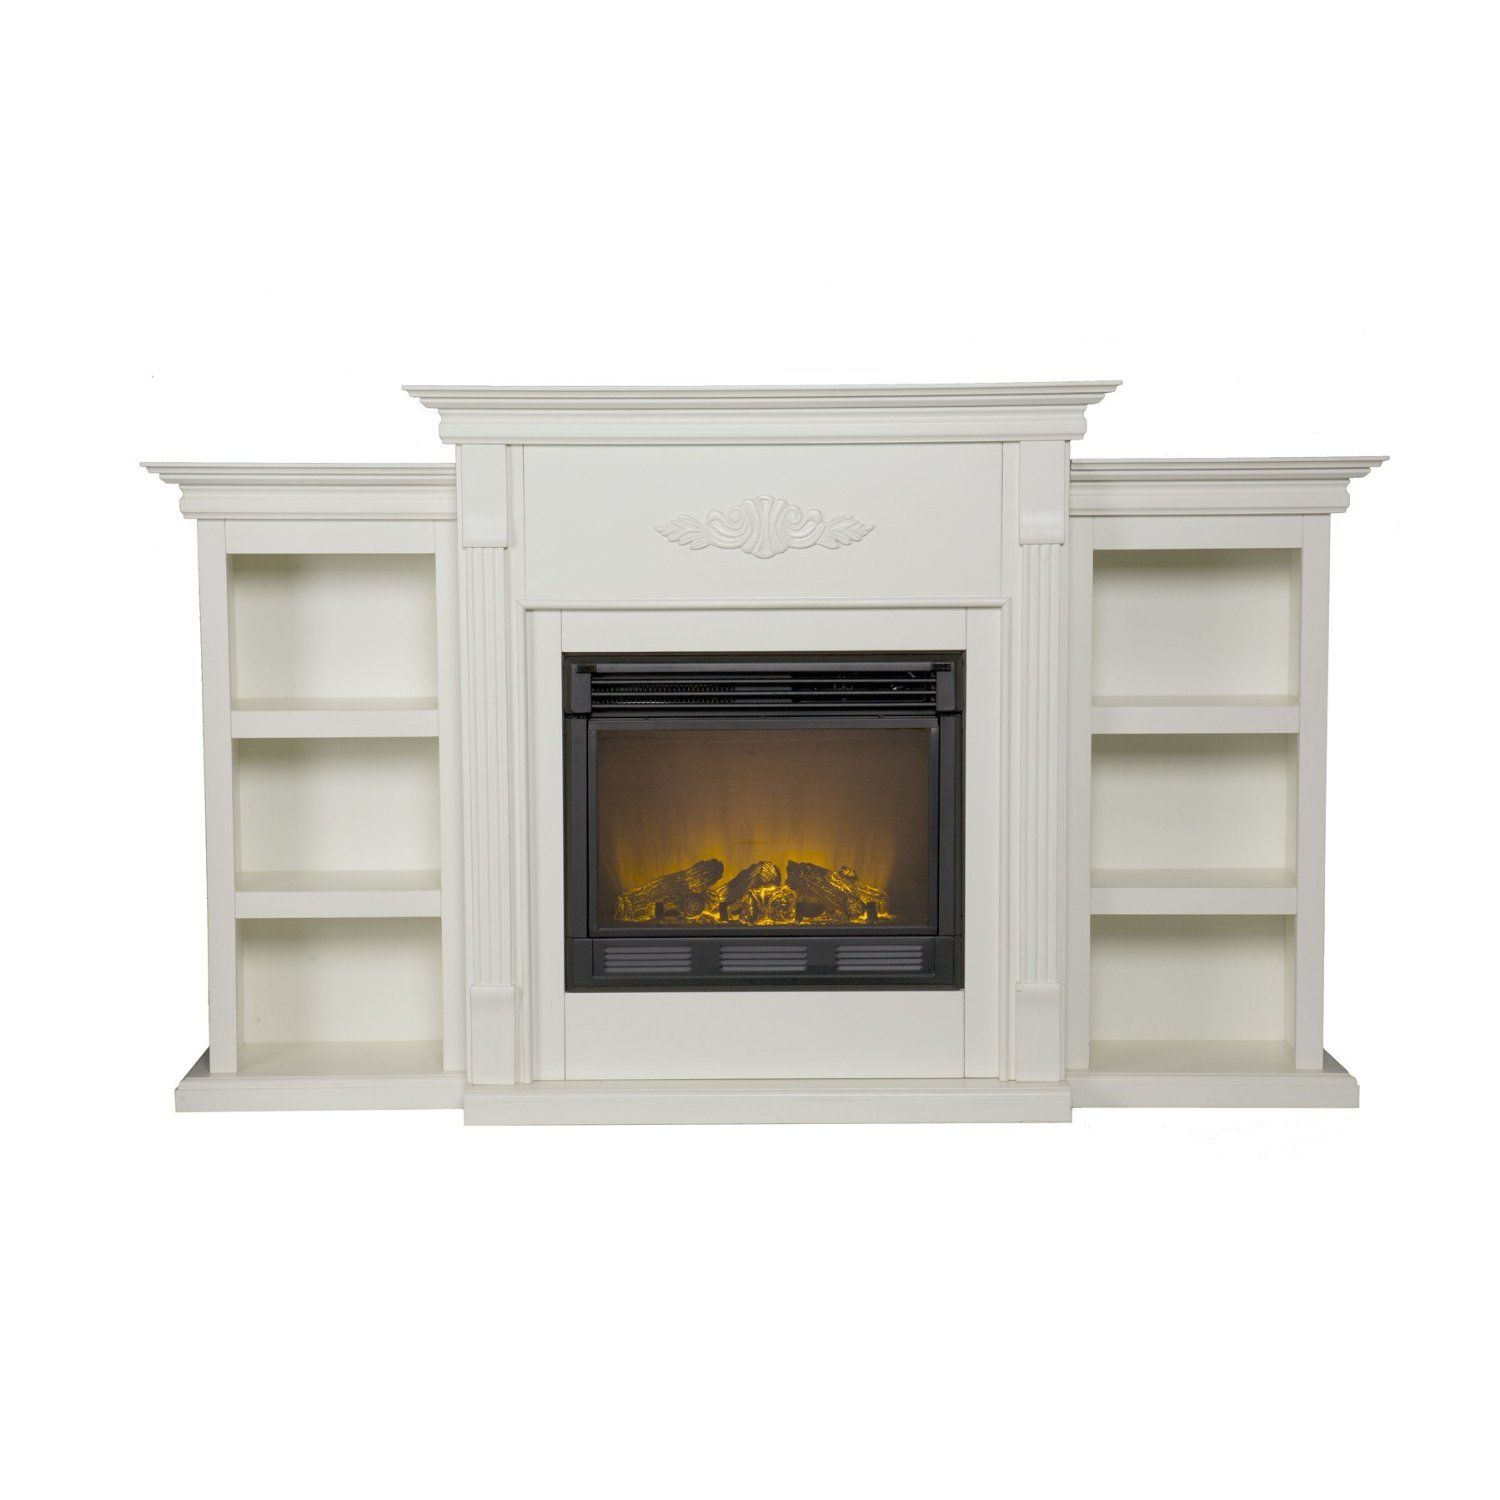 amazon com sei tennyson electric fireplace with bookcases ivory